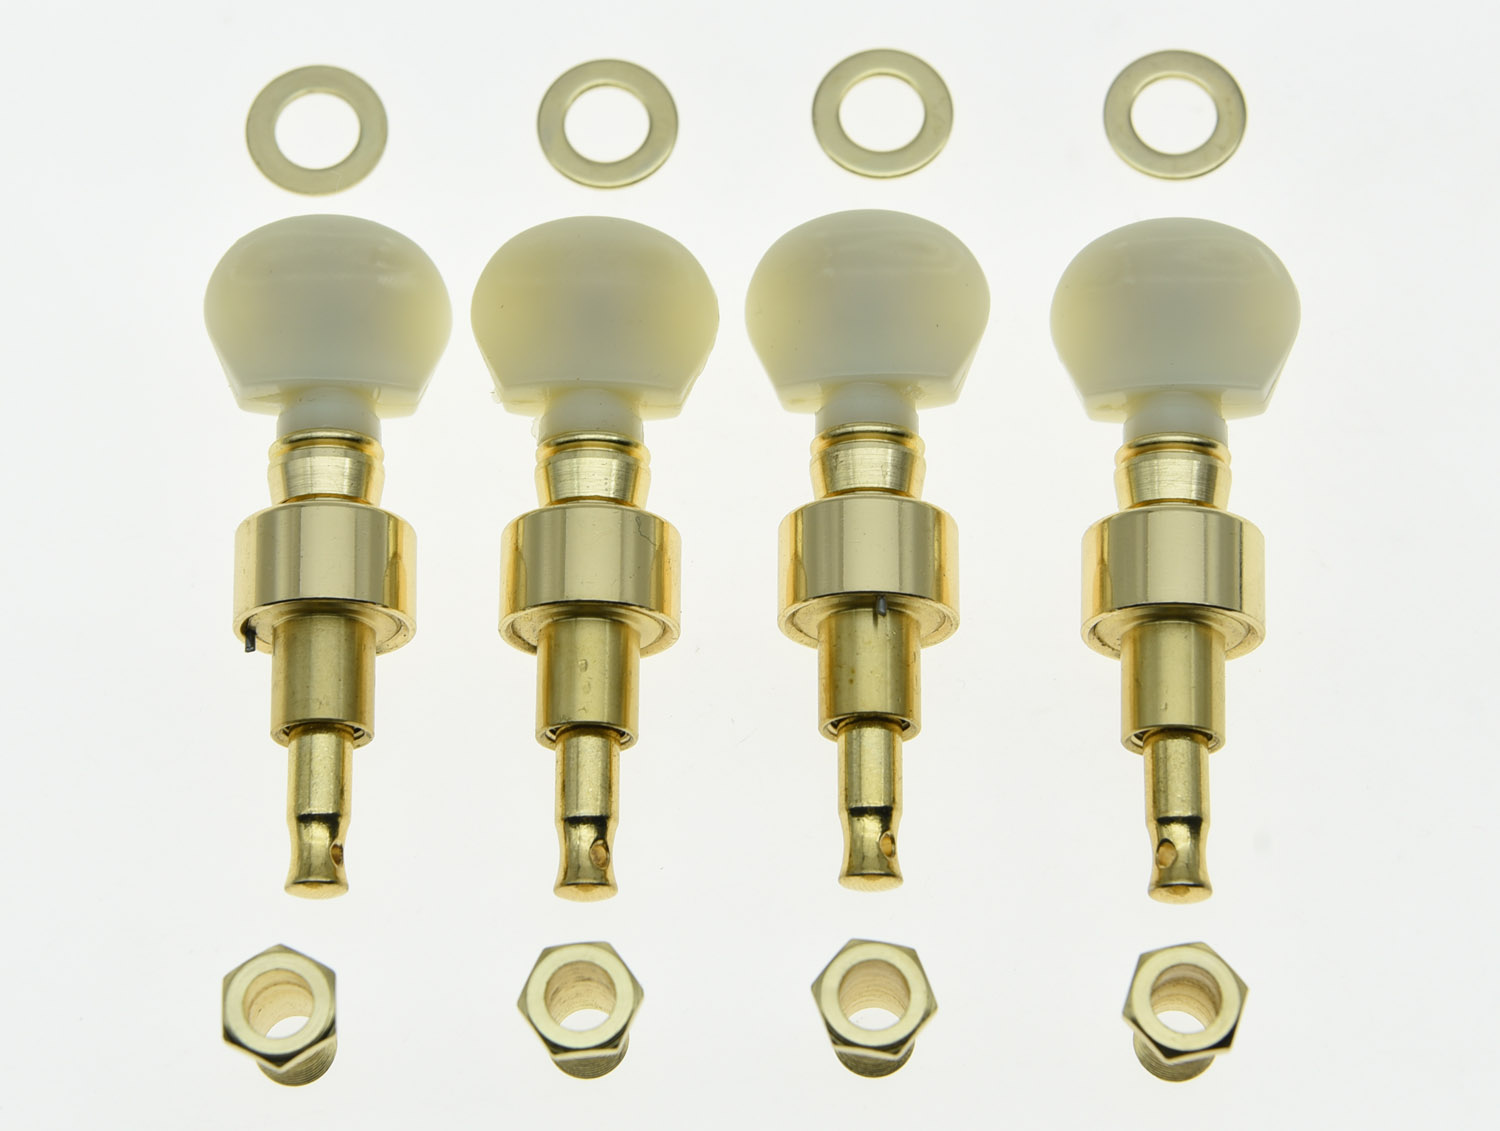 Set of 4 Gold w/ Ivory Buttons Banjo Geared Tuners Tuning Pegs Machine Heads kaish set of 4 left handed sealed bass tuners tuning keys pegs 4 string bass machine heads 2 colors